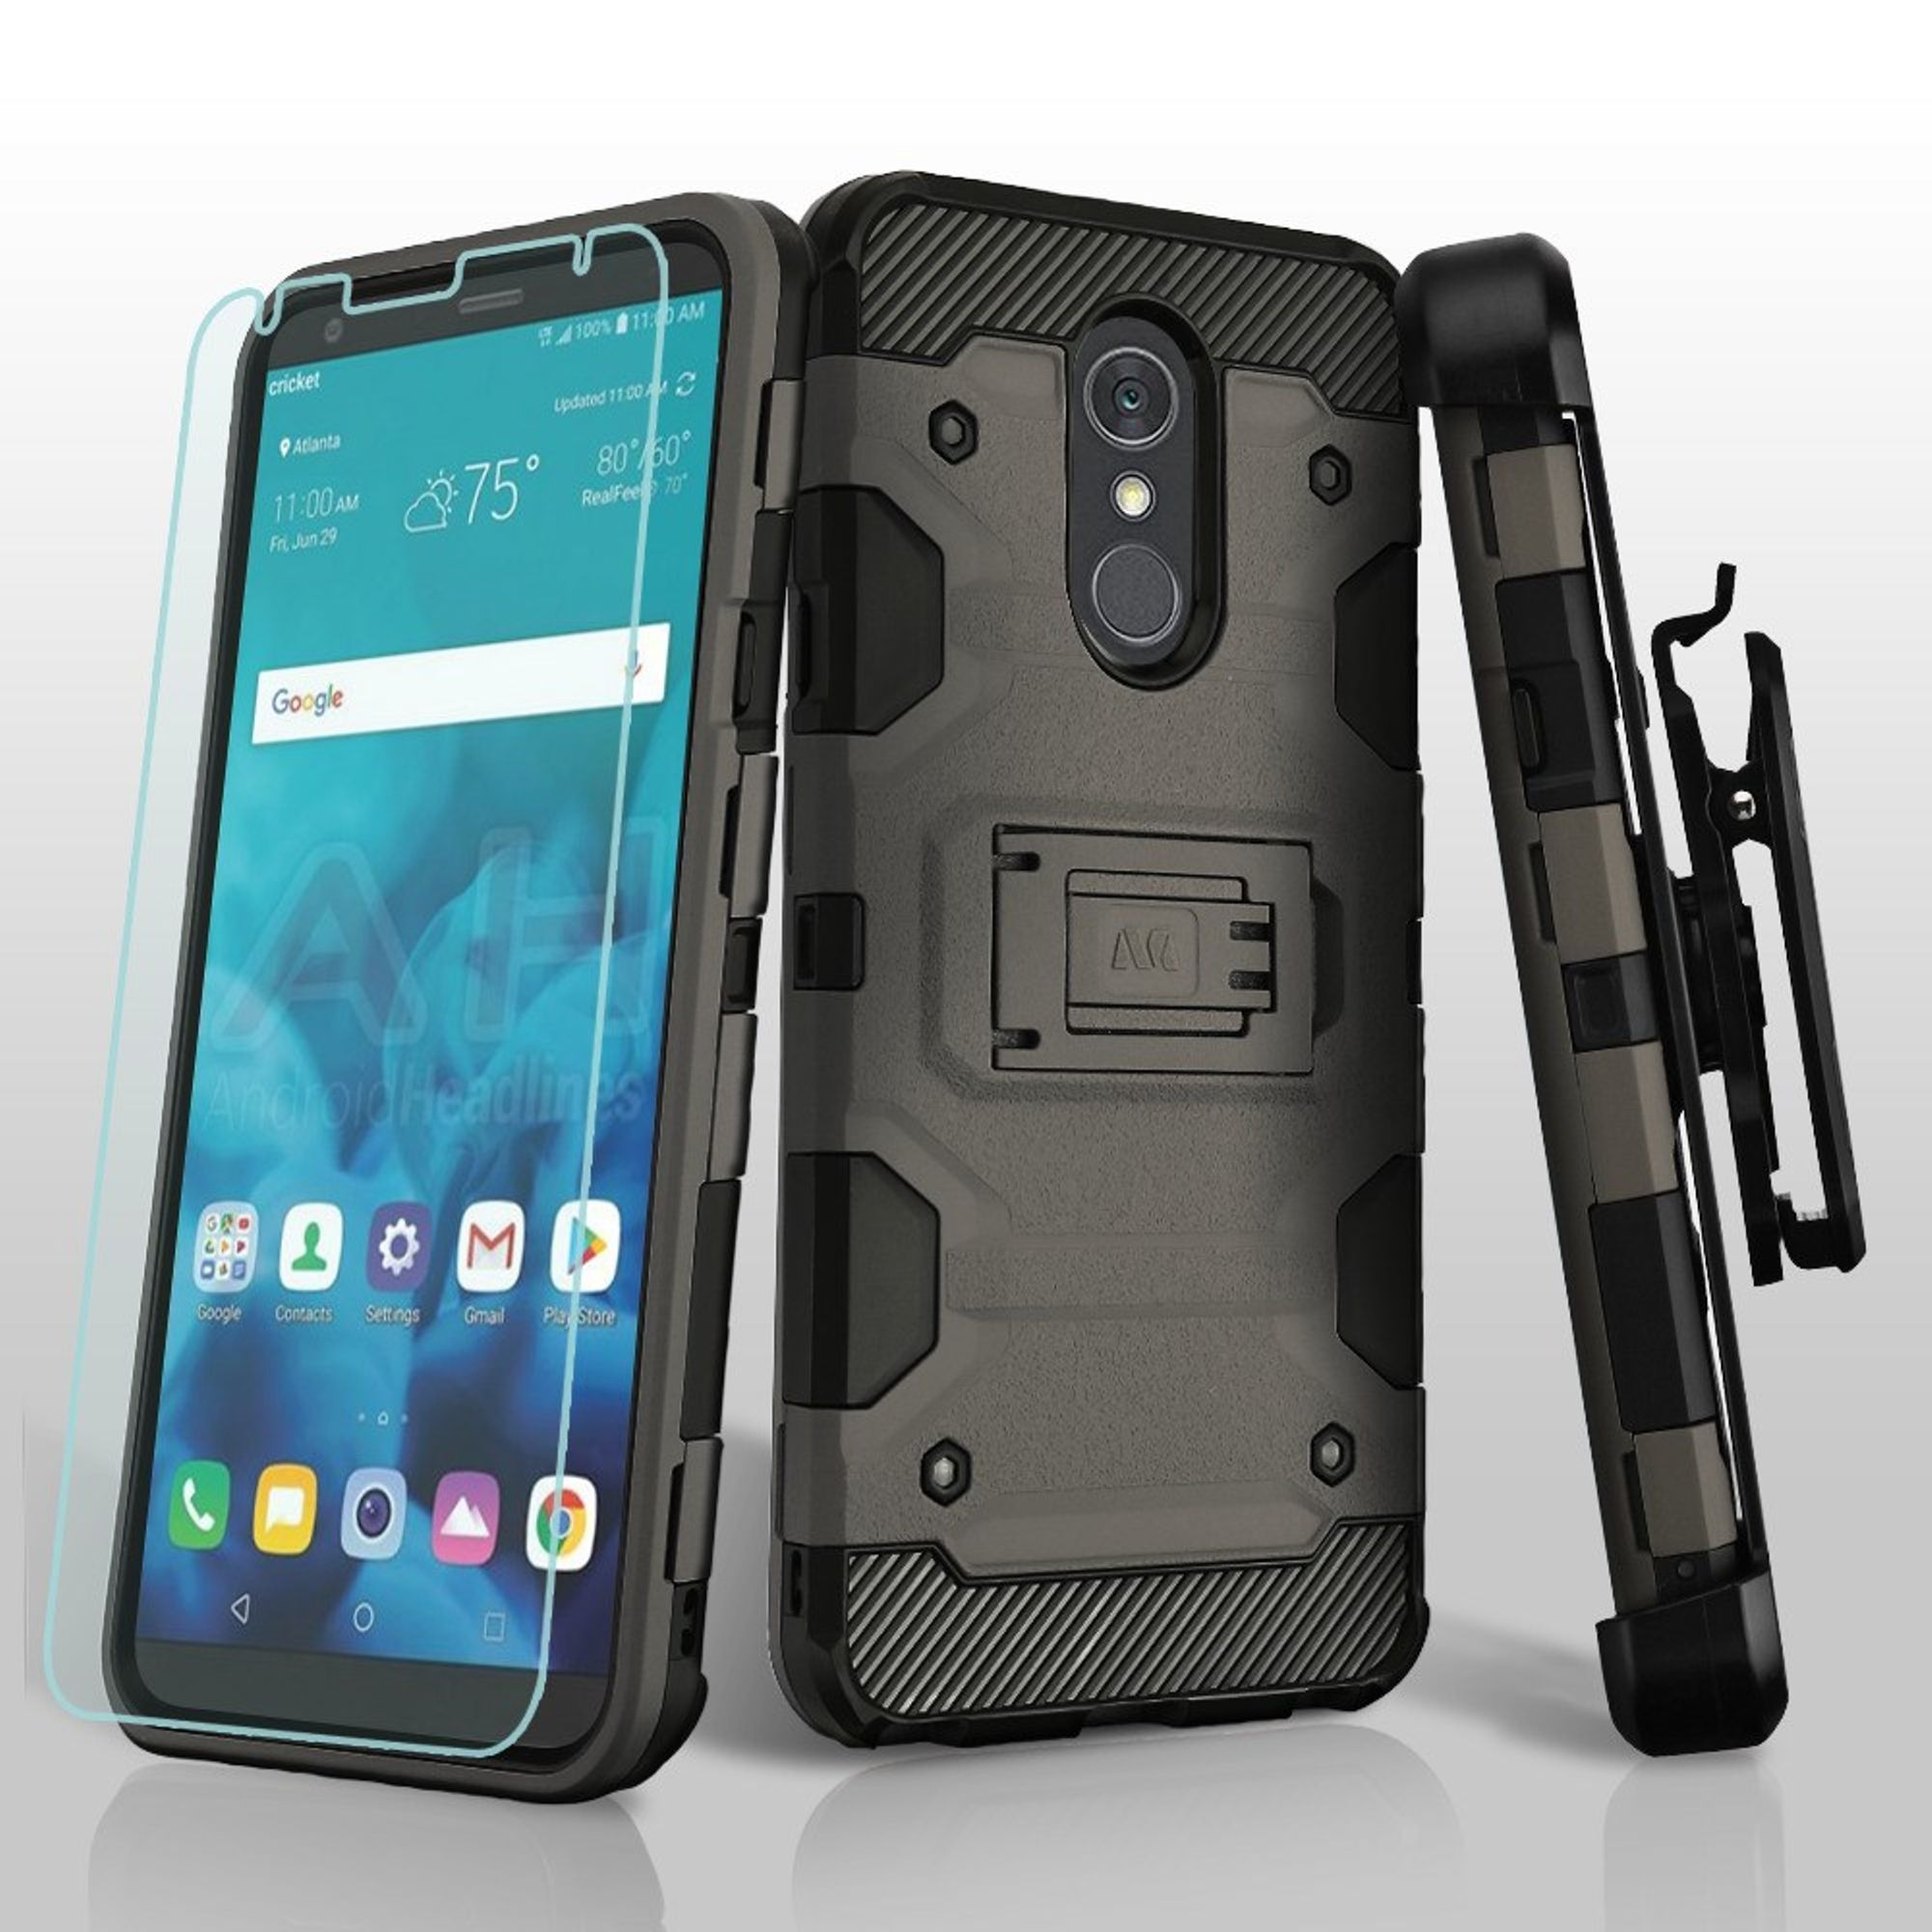 LG Stylo 4 Case, by Insten Storm Tank Dual Layer Hybrid Stand PC/TPU Rubber Holster Case Cover For LG Stylo 4 - Gray/Black